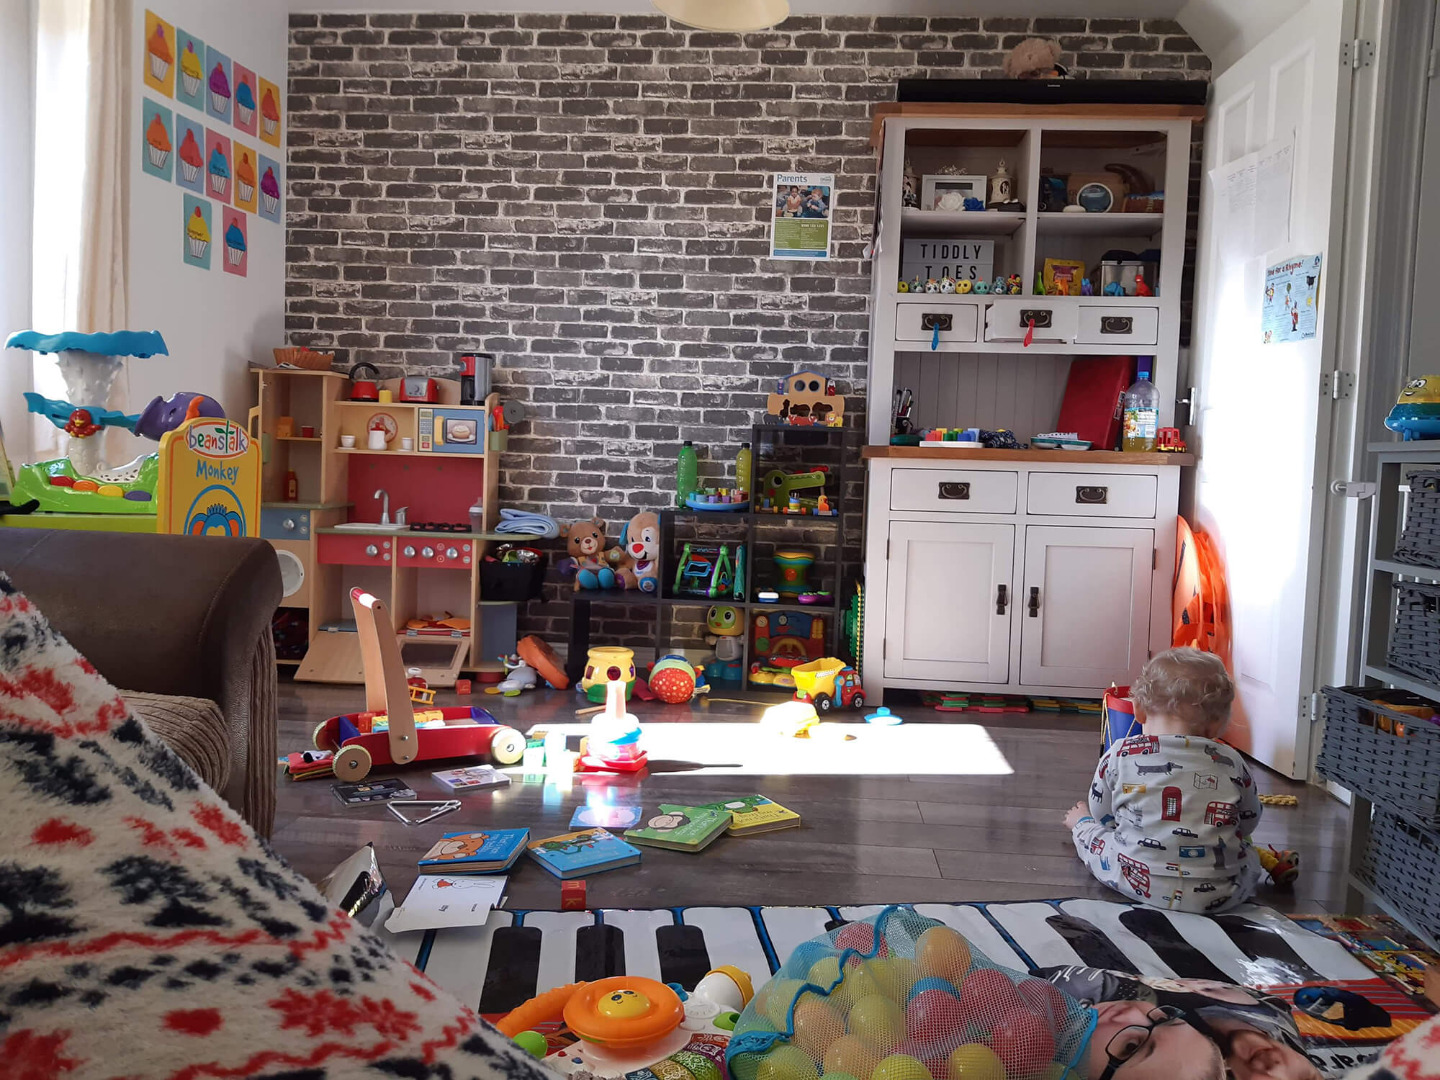 Image of Tiddly Toes Play Room